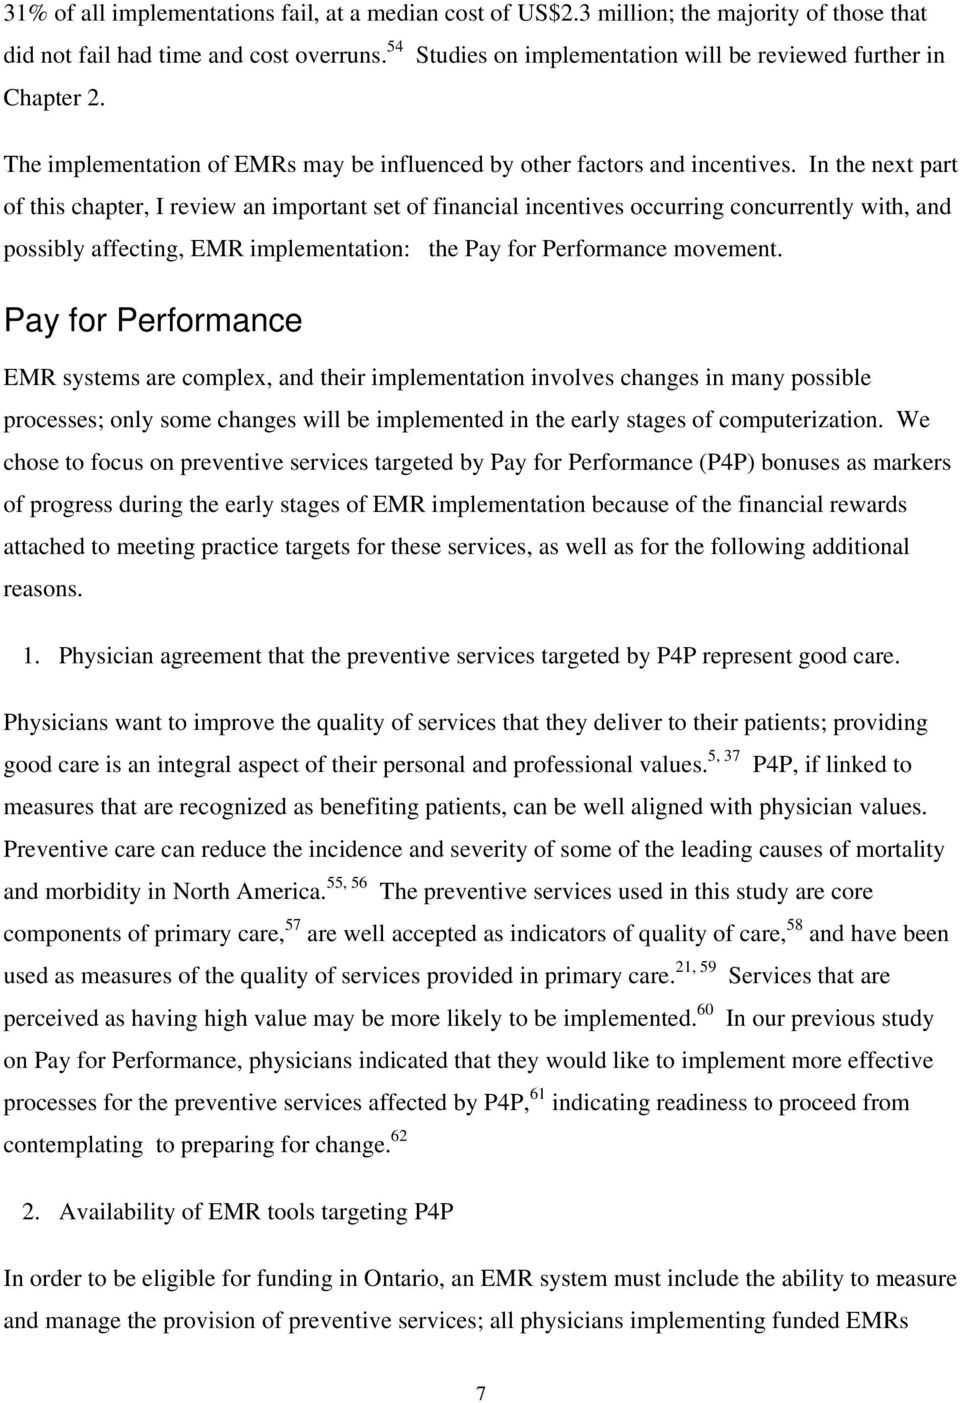 In the next part of this chapter, I review an important set of financial incentives occurring concurrently with, and possibly affecting, EMR implementation: the Pay for Performance movement.